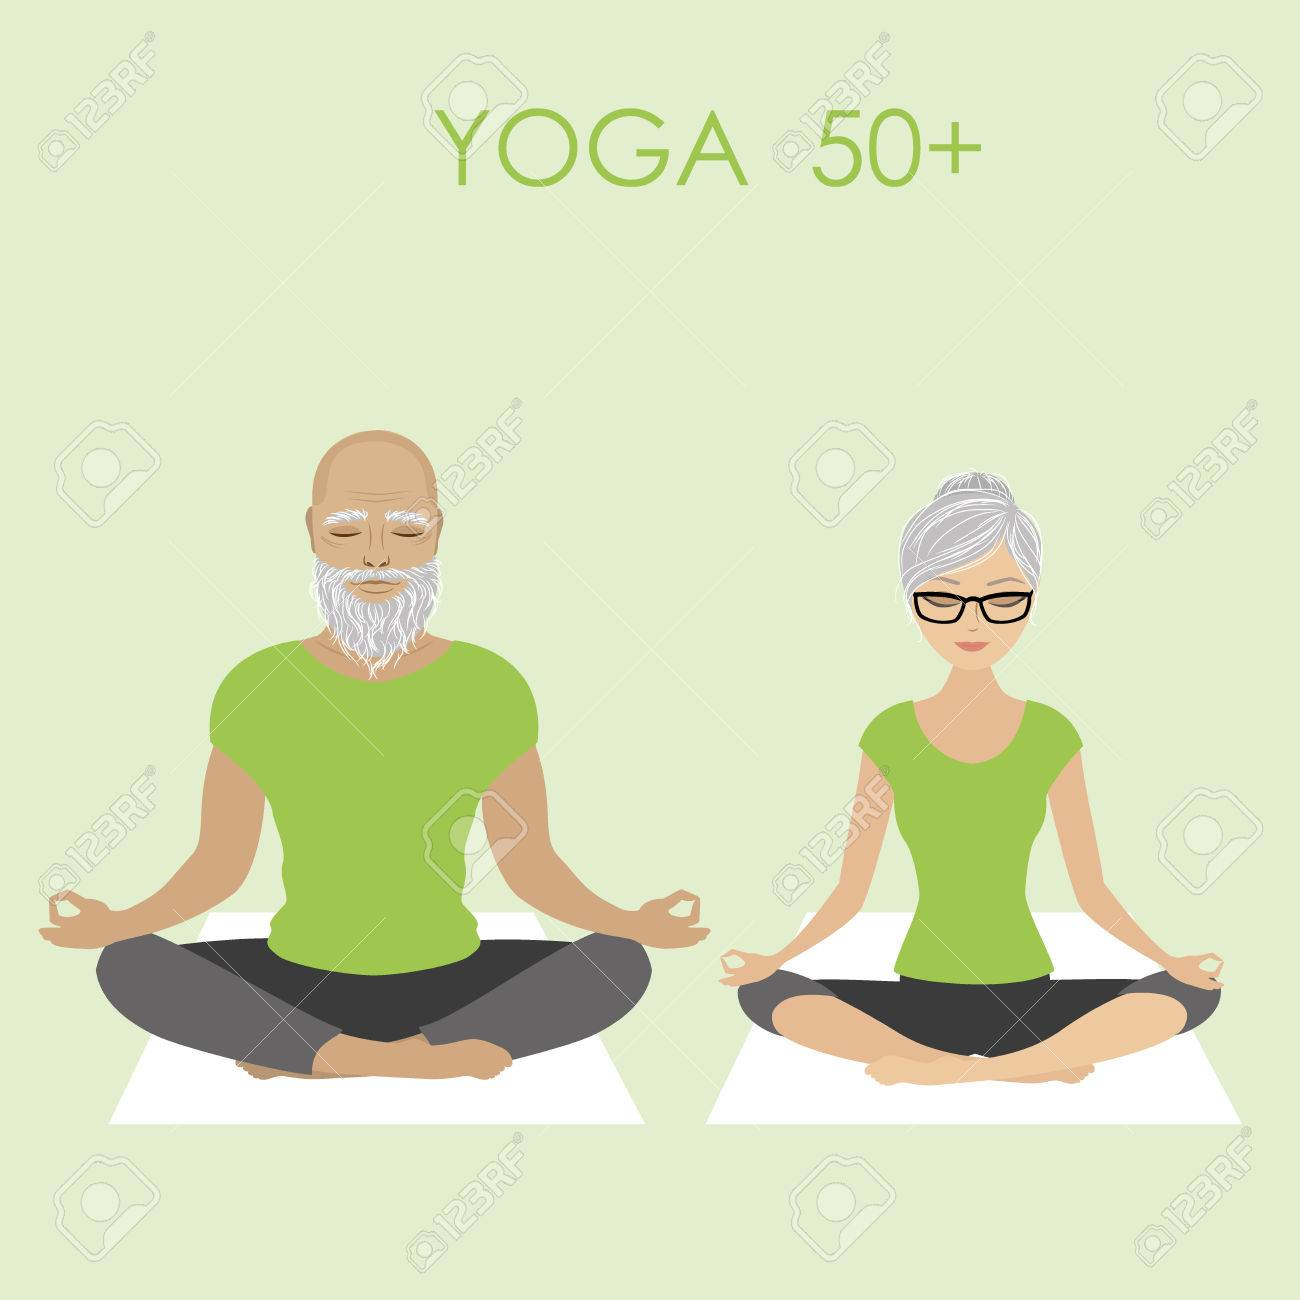 Senior Citizen Couple Relaxing In Yoga Pose Stock Vector Illustration Royalty Free Cliparts Vectors And Stock Illustration Image 69008562